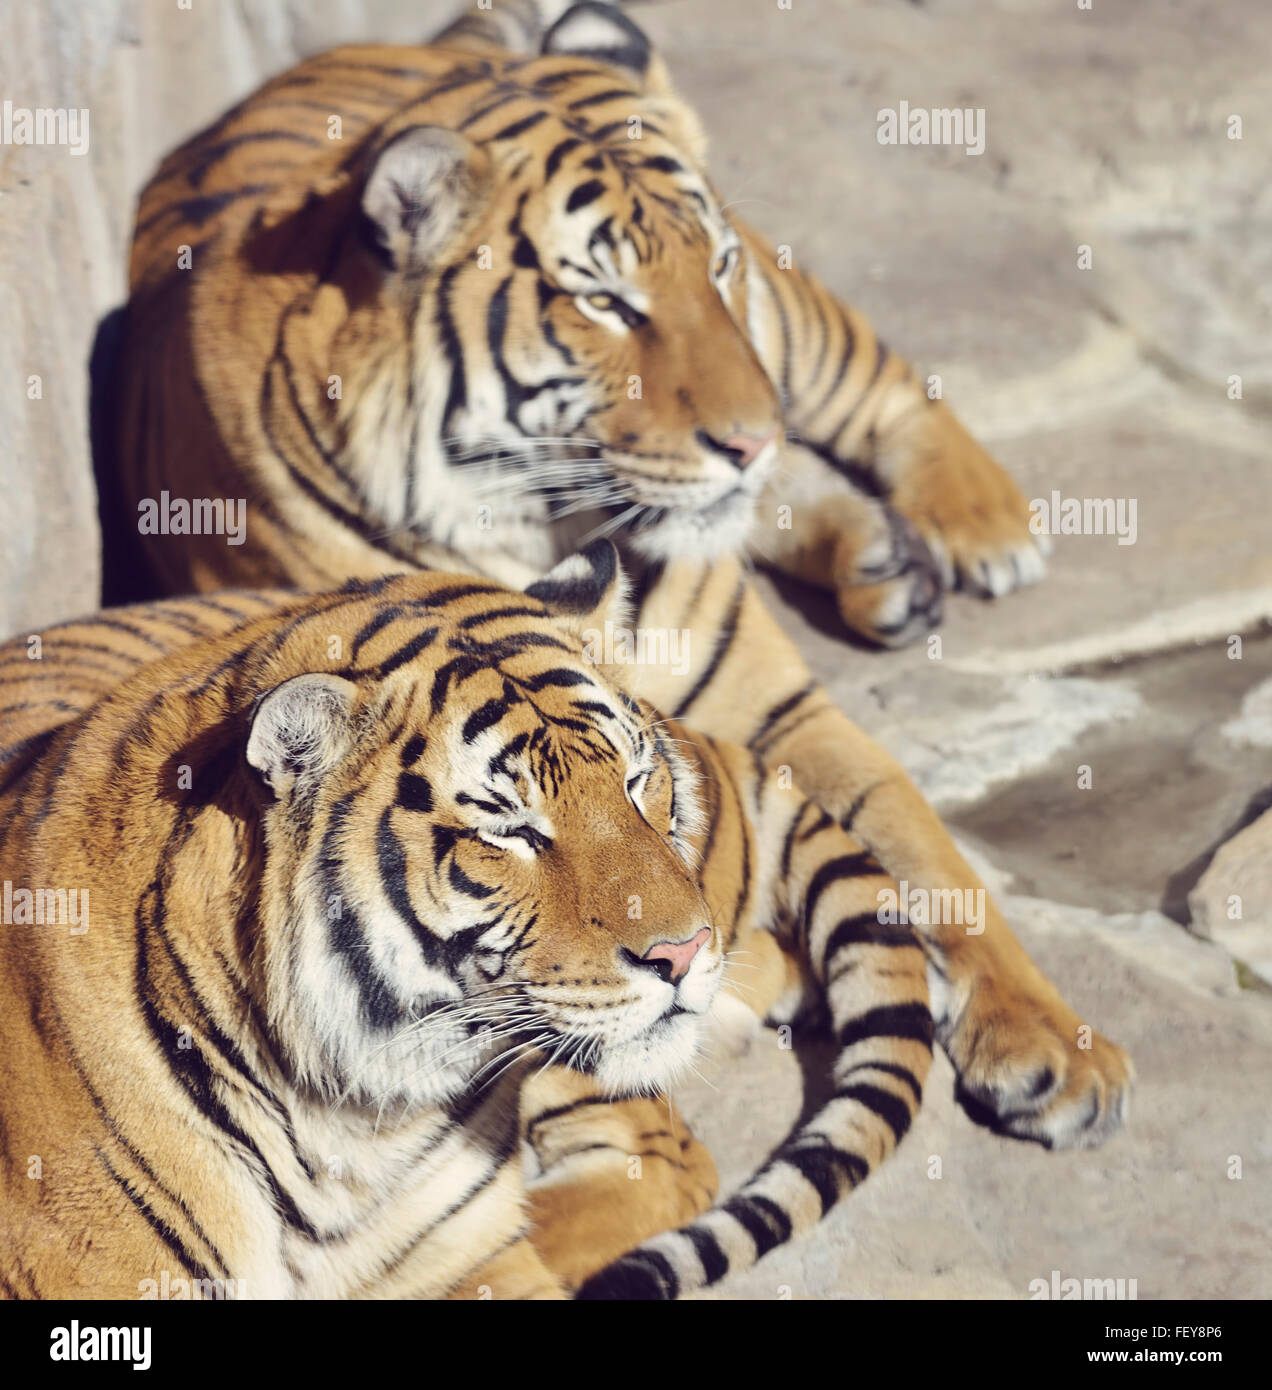 Two Resting Tigers on The Rocks - Stock Image